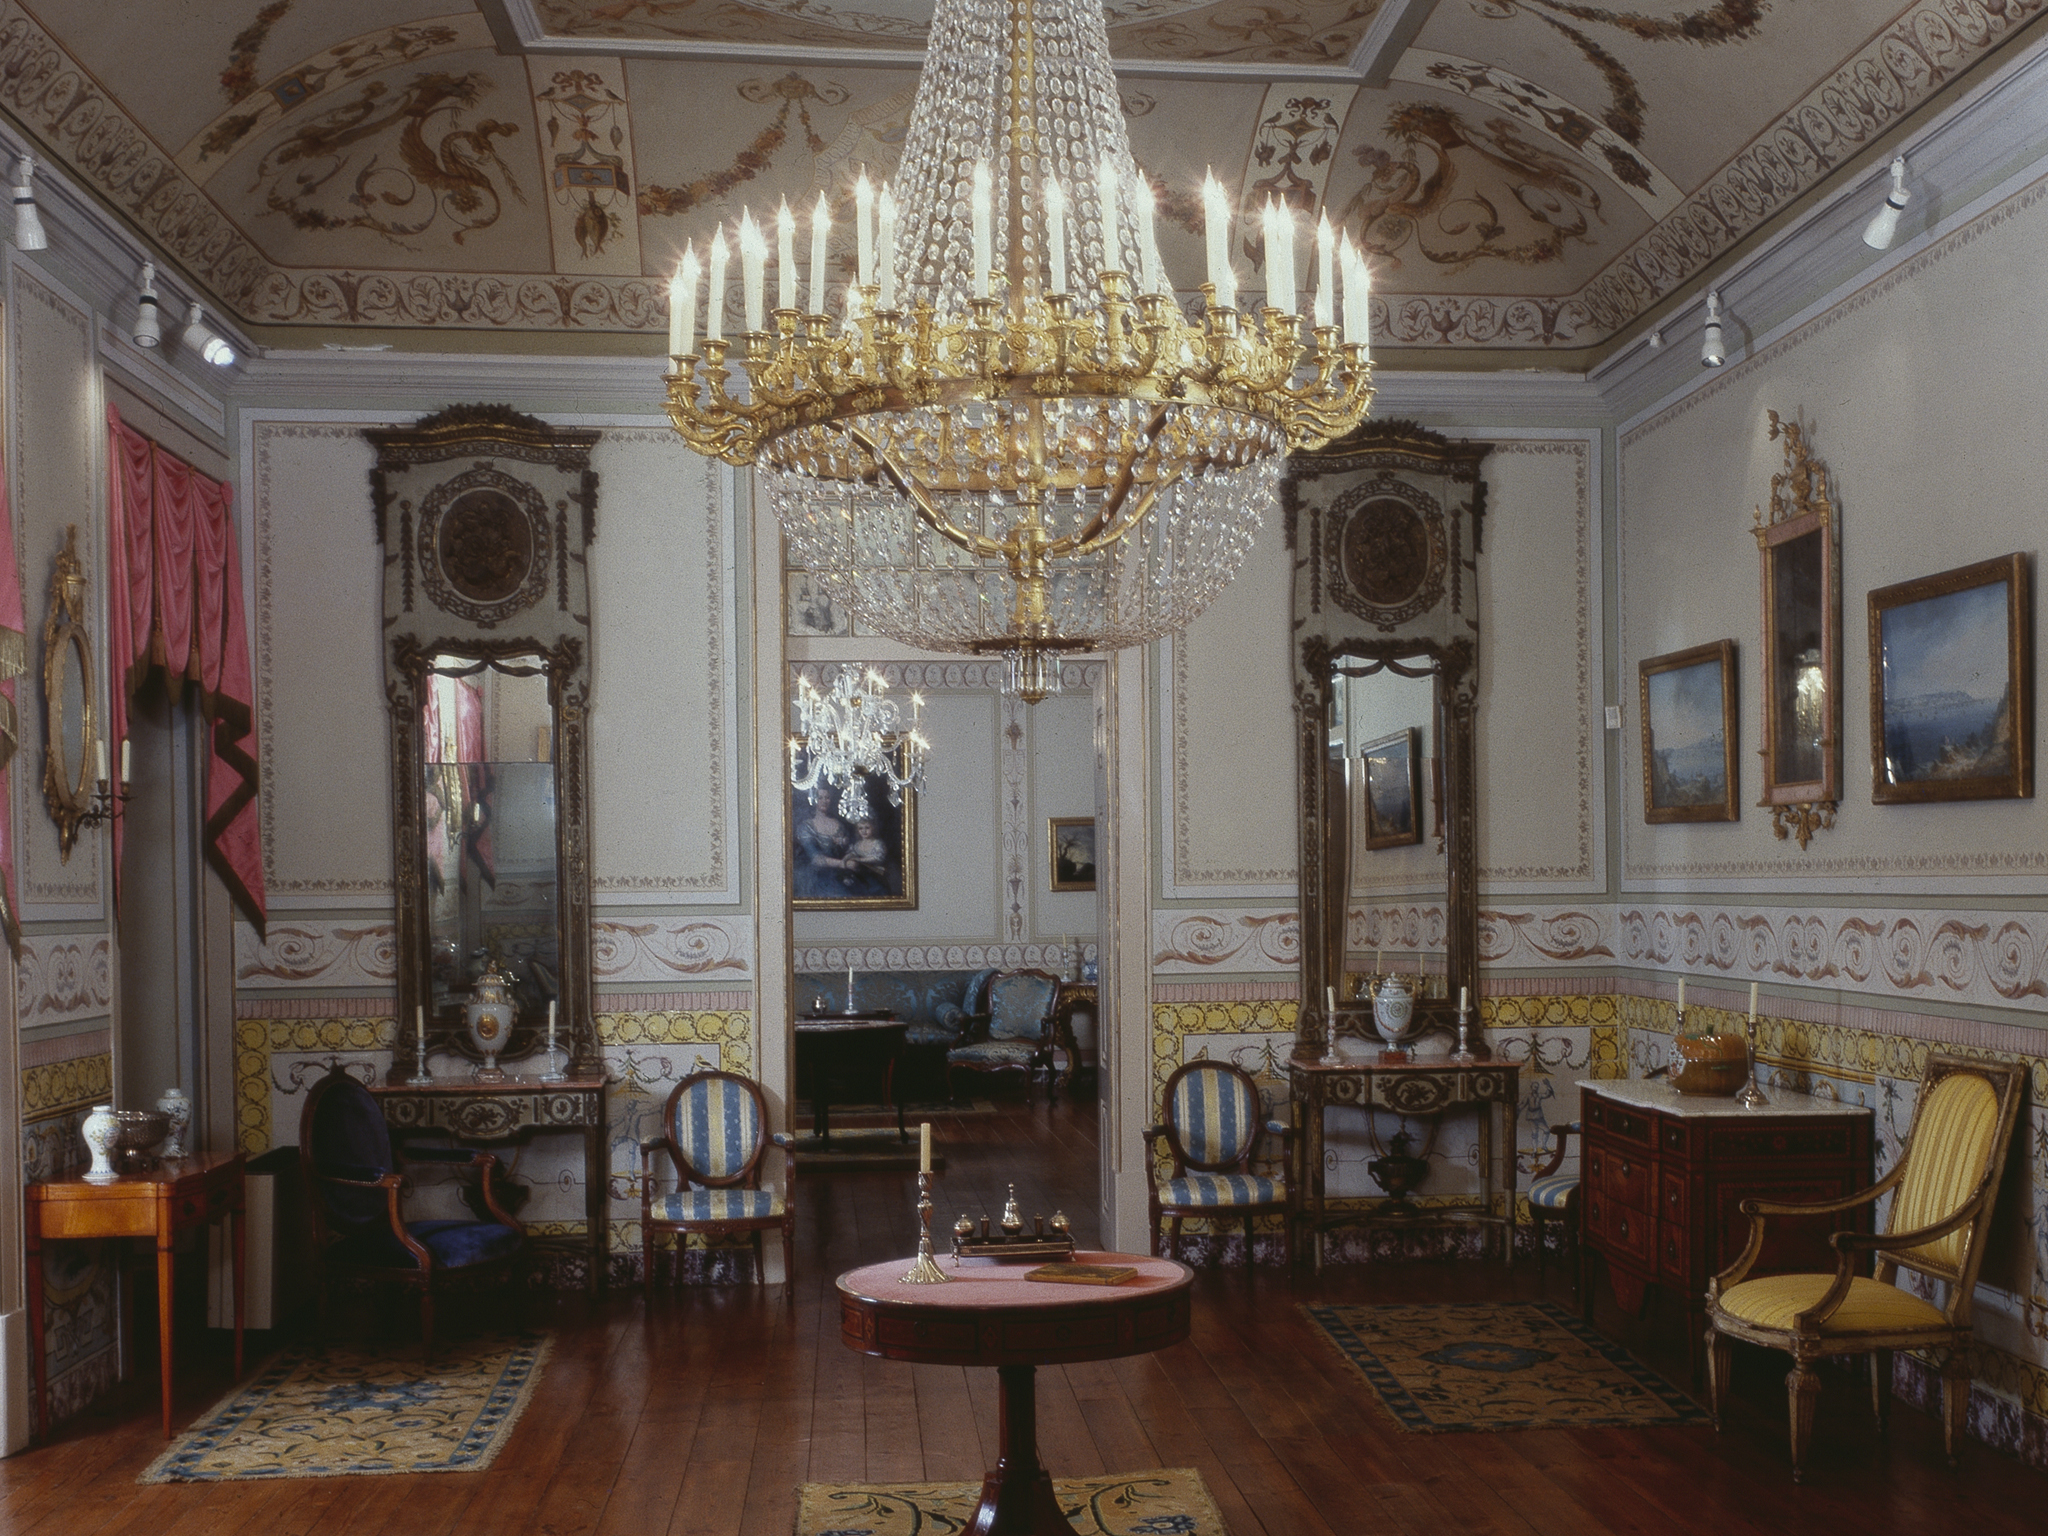 sala d maria do museu de artes decorativas